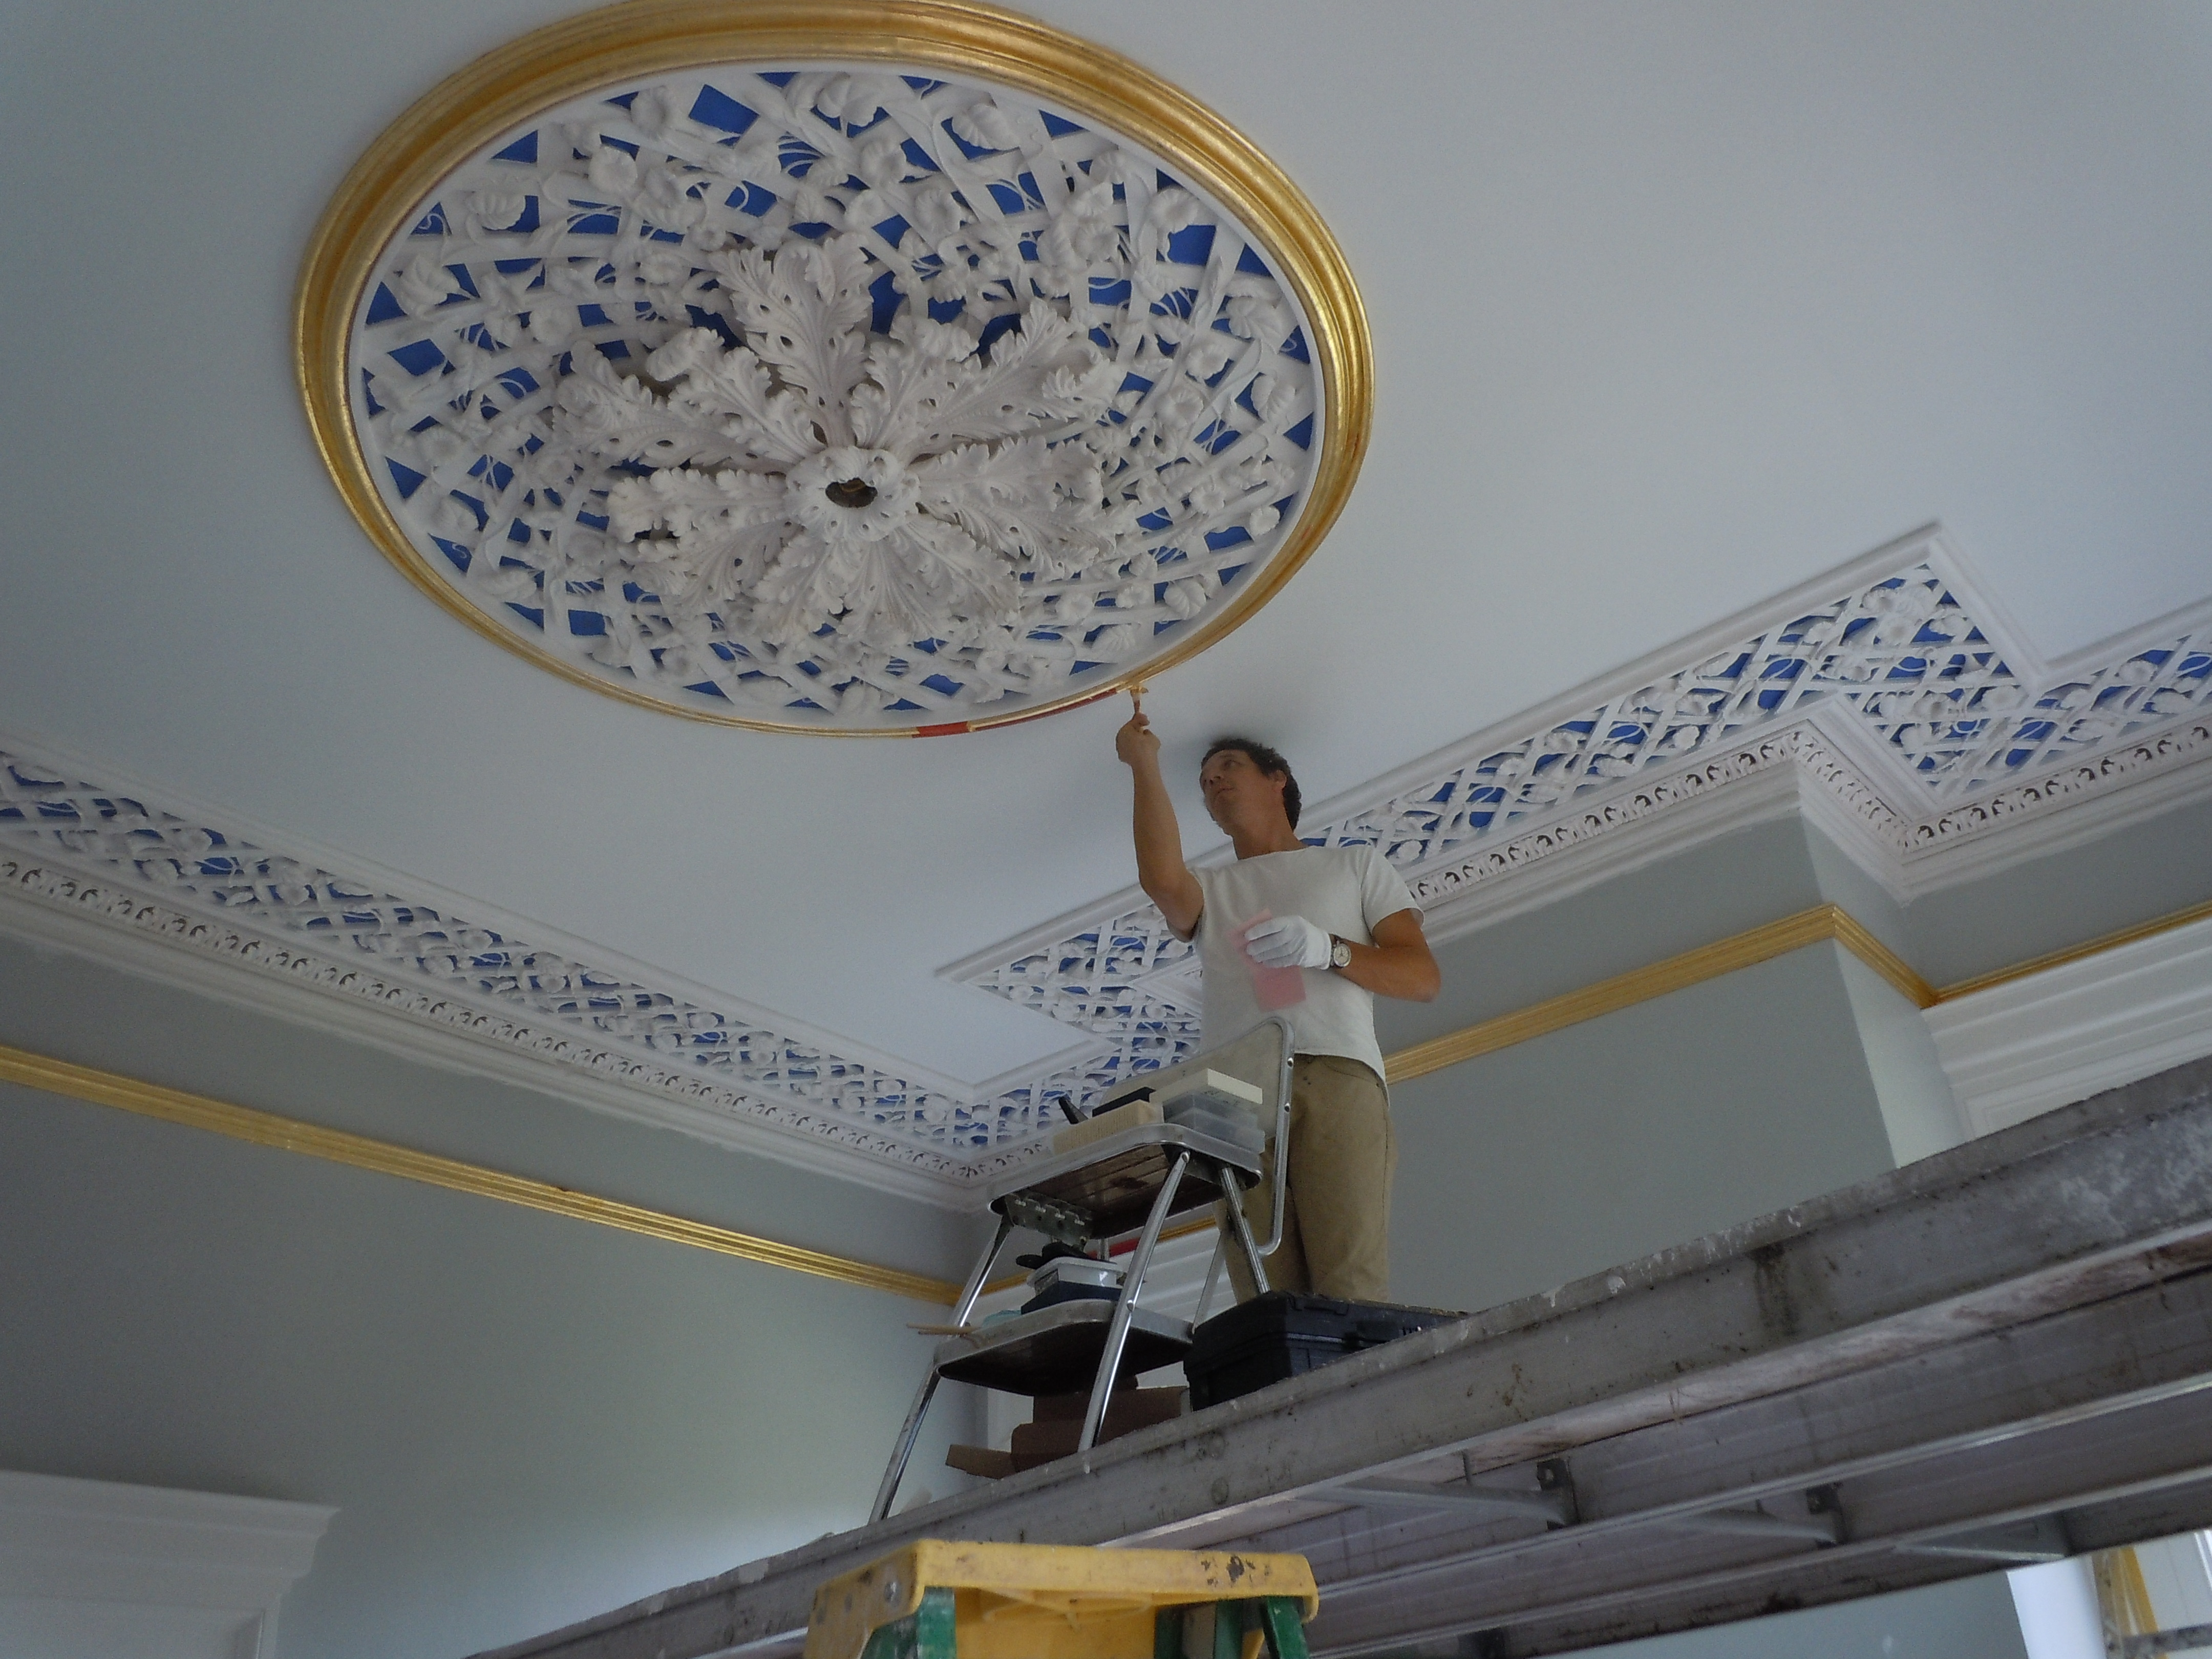 Greg Jacobs gilding the front room ceiling medallion.